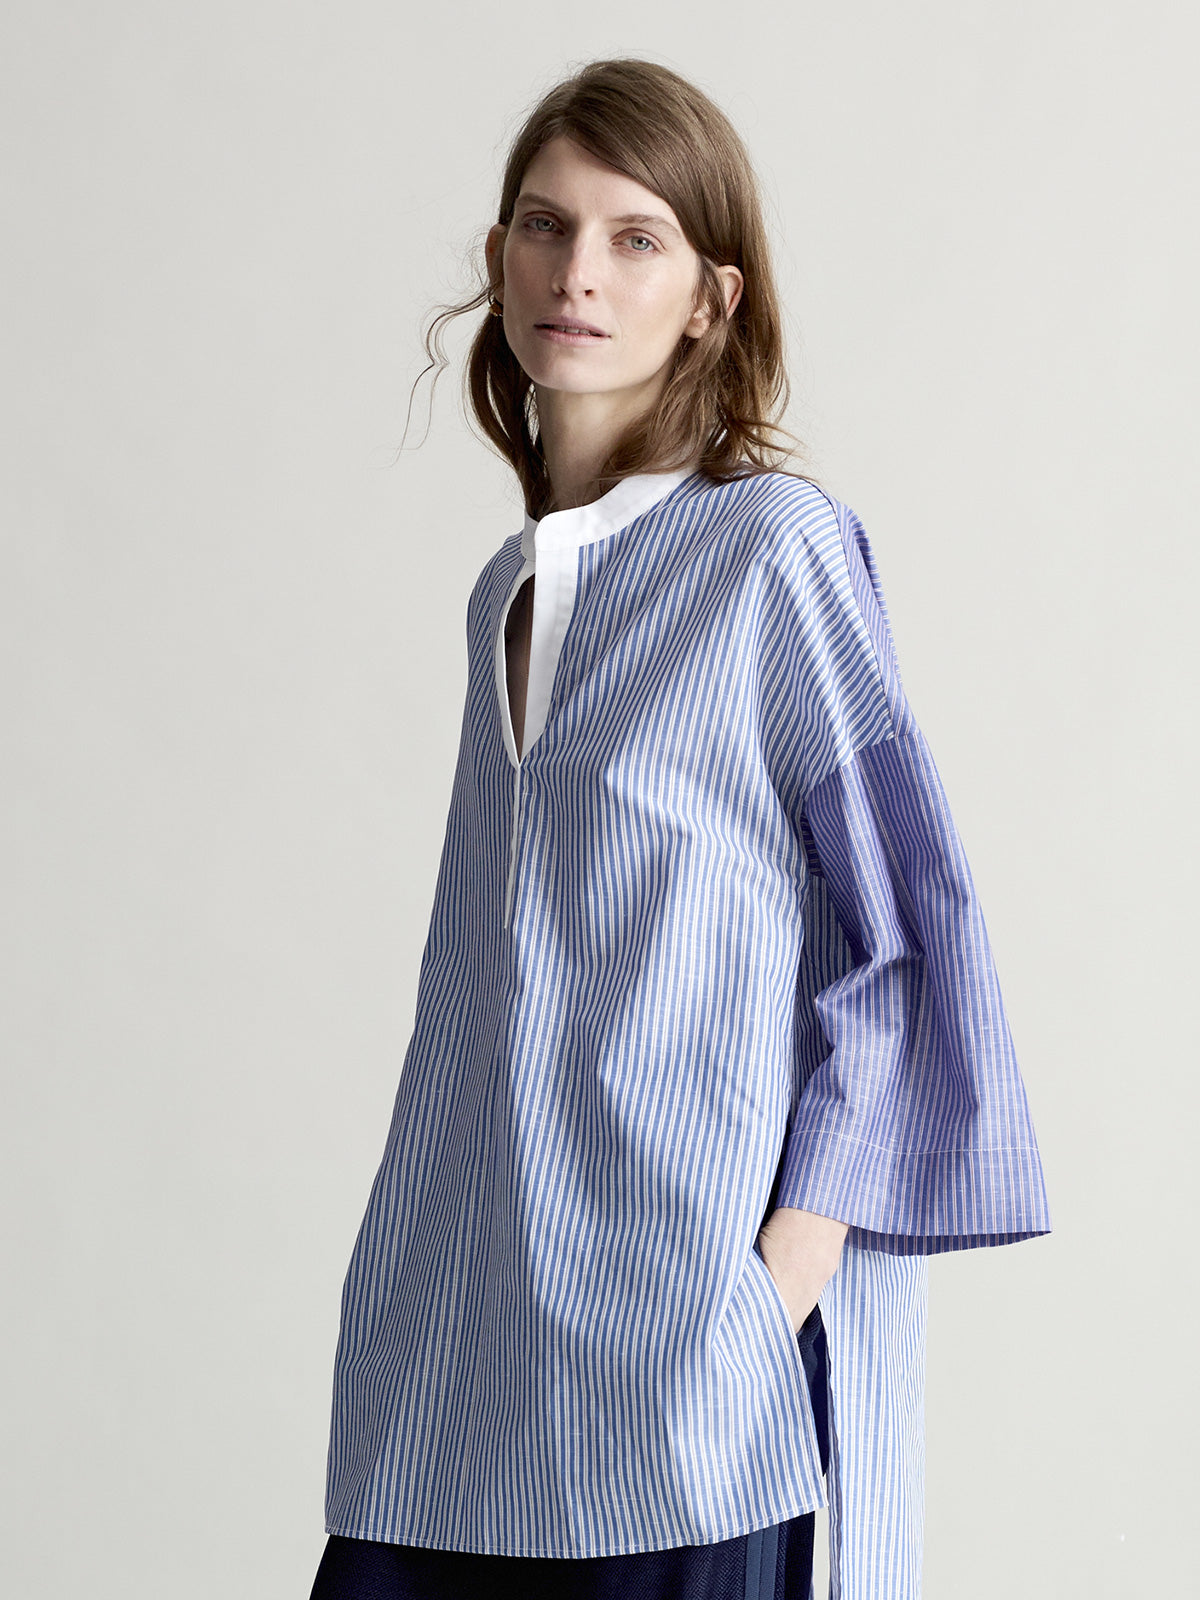 June Blue Stripe Shirt - Sykes London